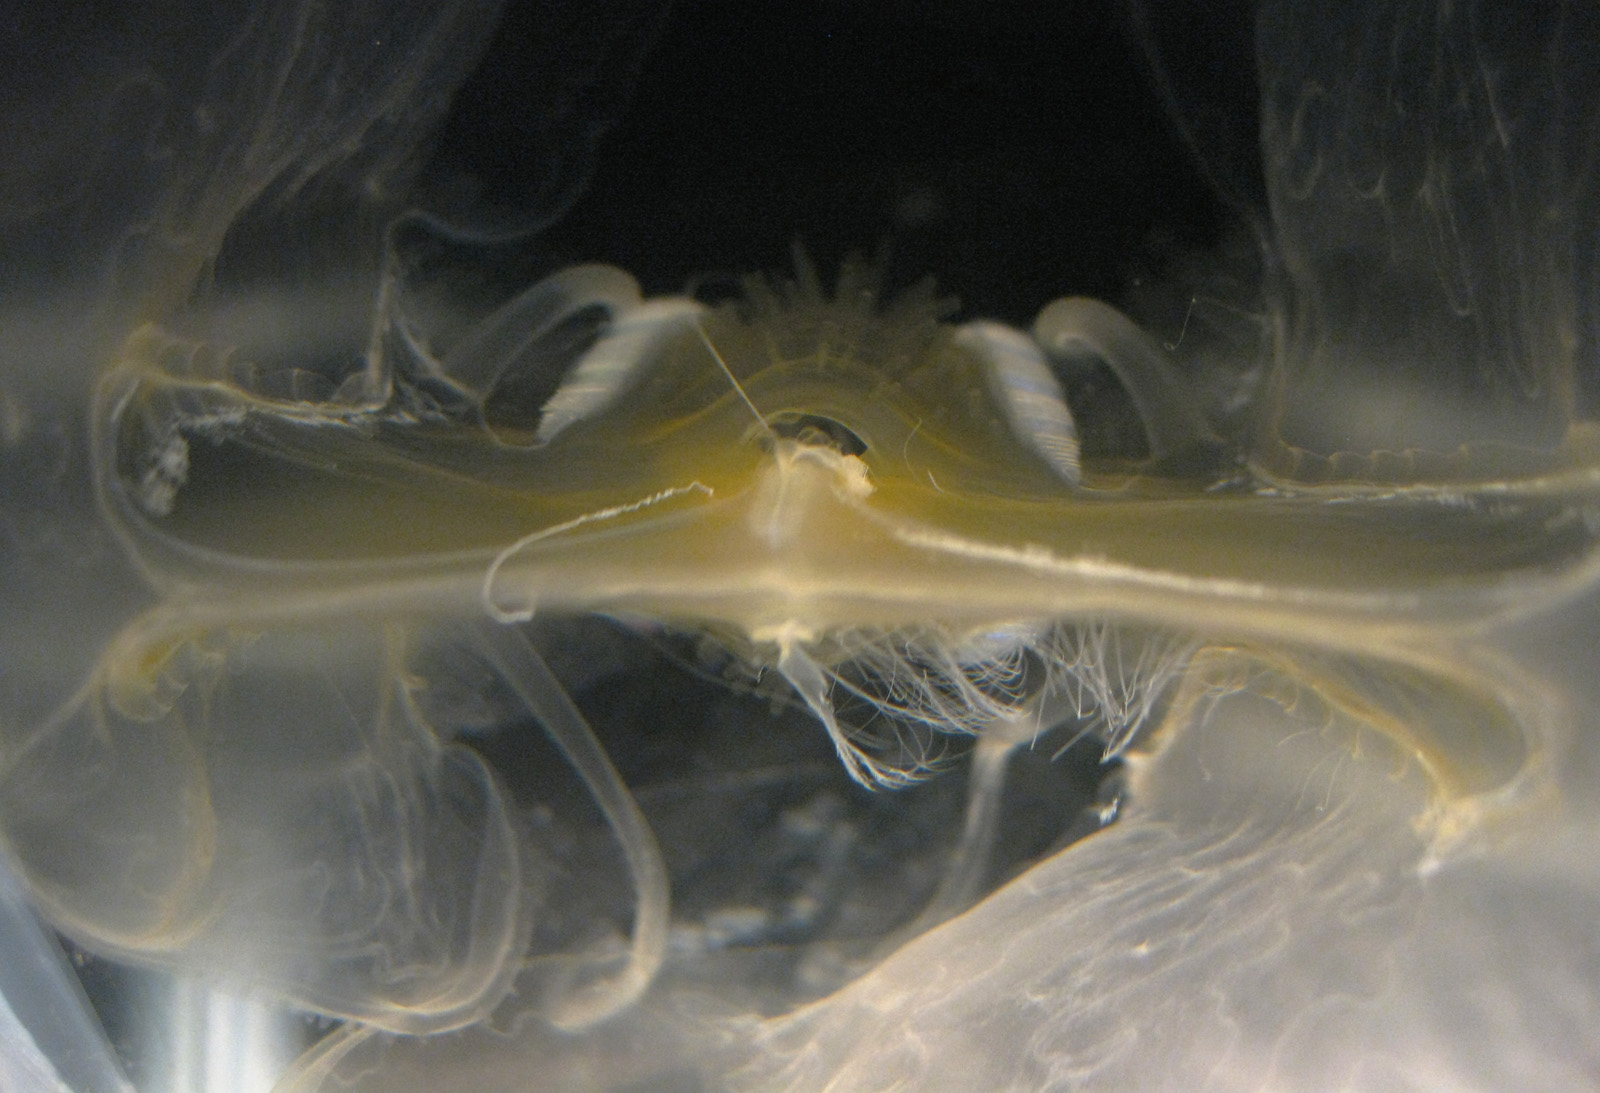 Leucothea multicornis - oral view